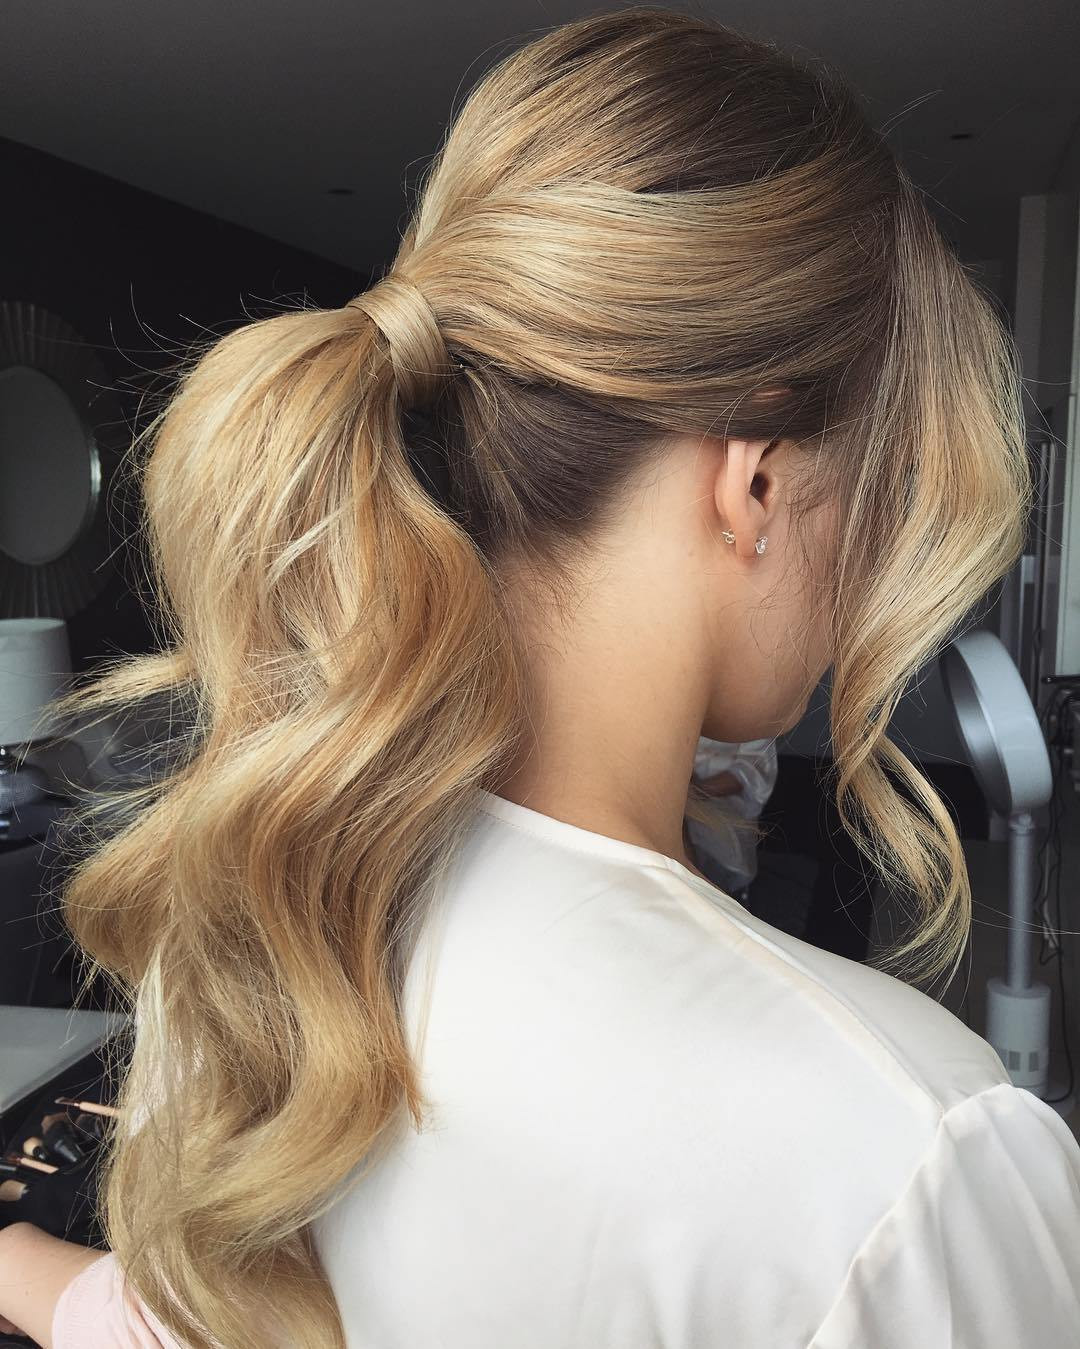 Best ideas about Ponytail Prom Hairstyles . Save or Pin 40 Irresistible Hairstyles for Brides and Bridesmaids Now.